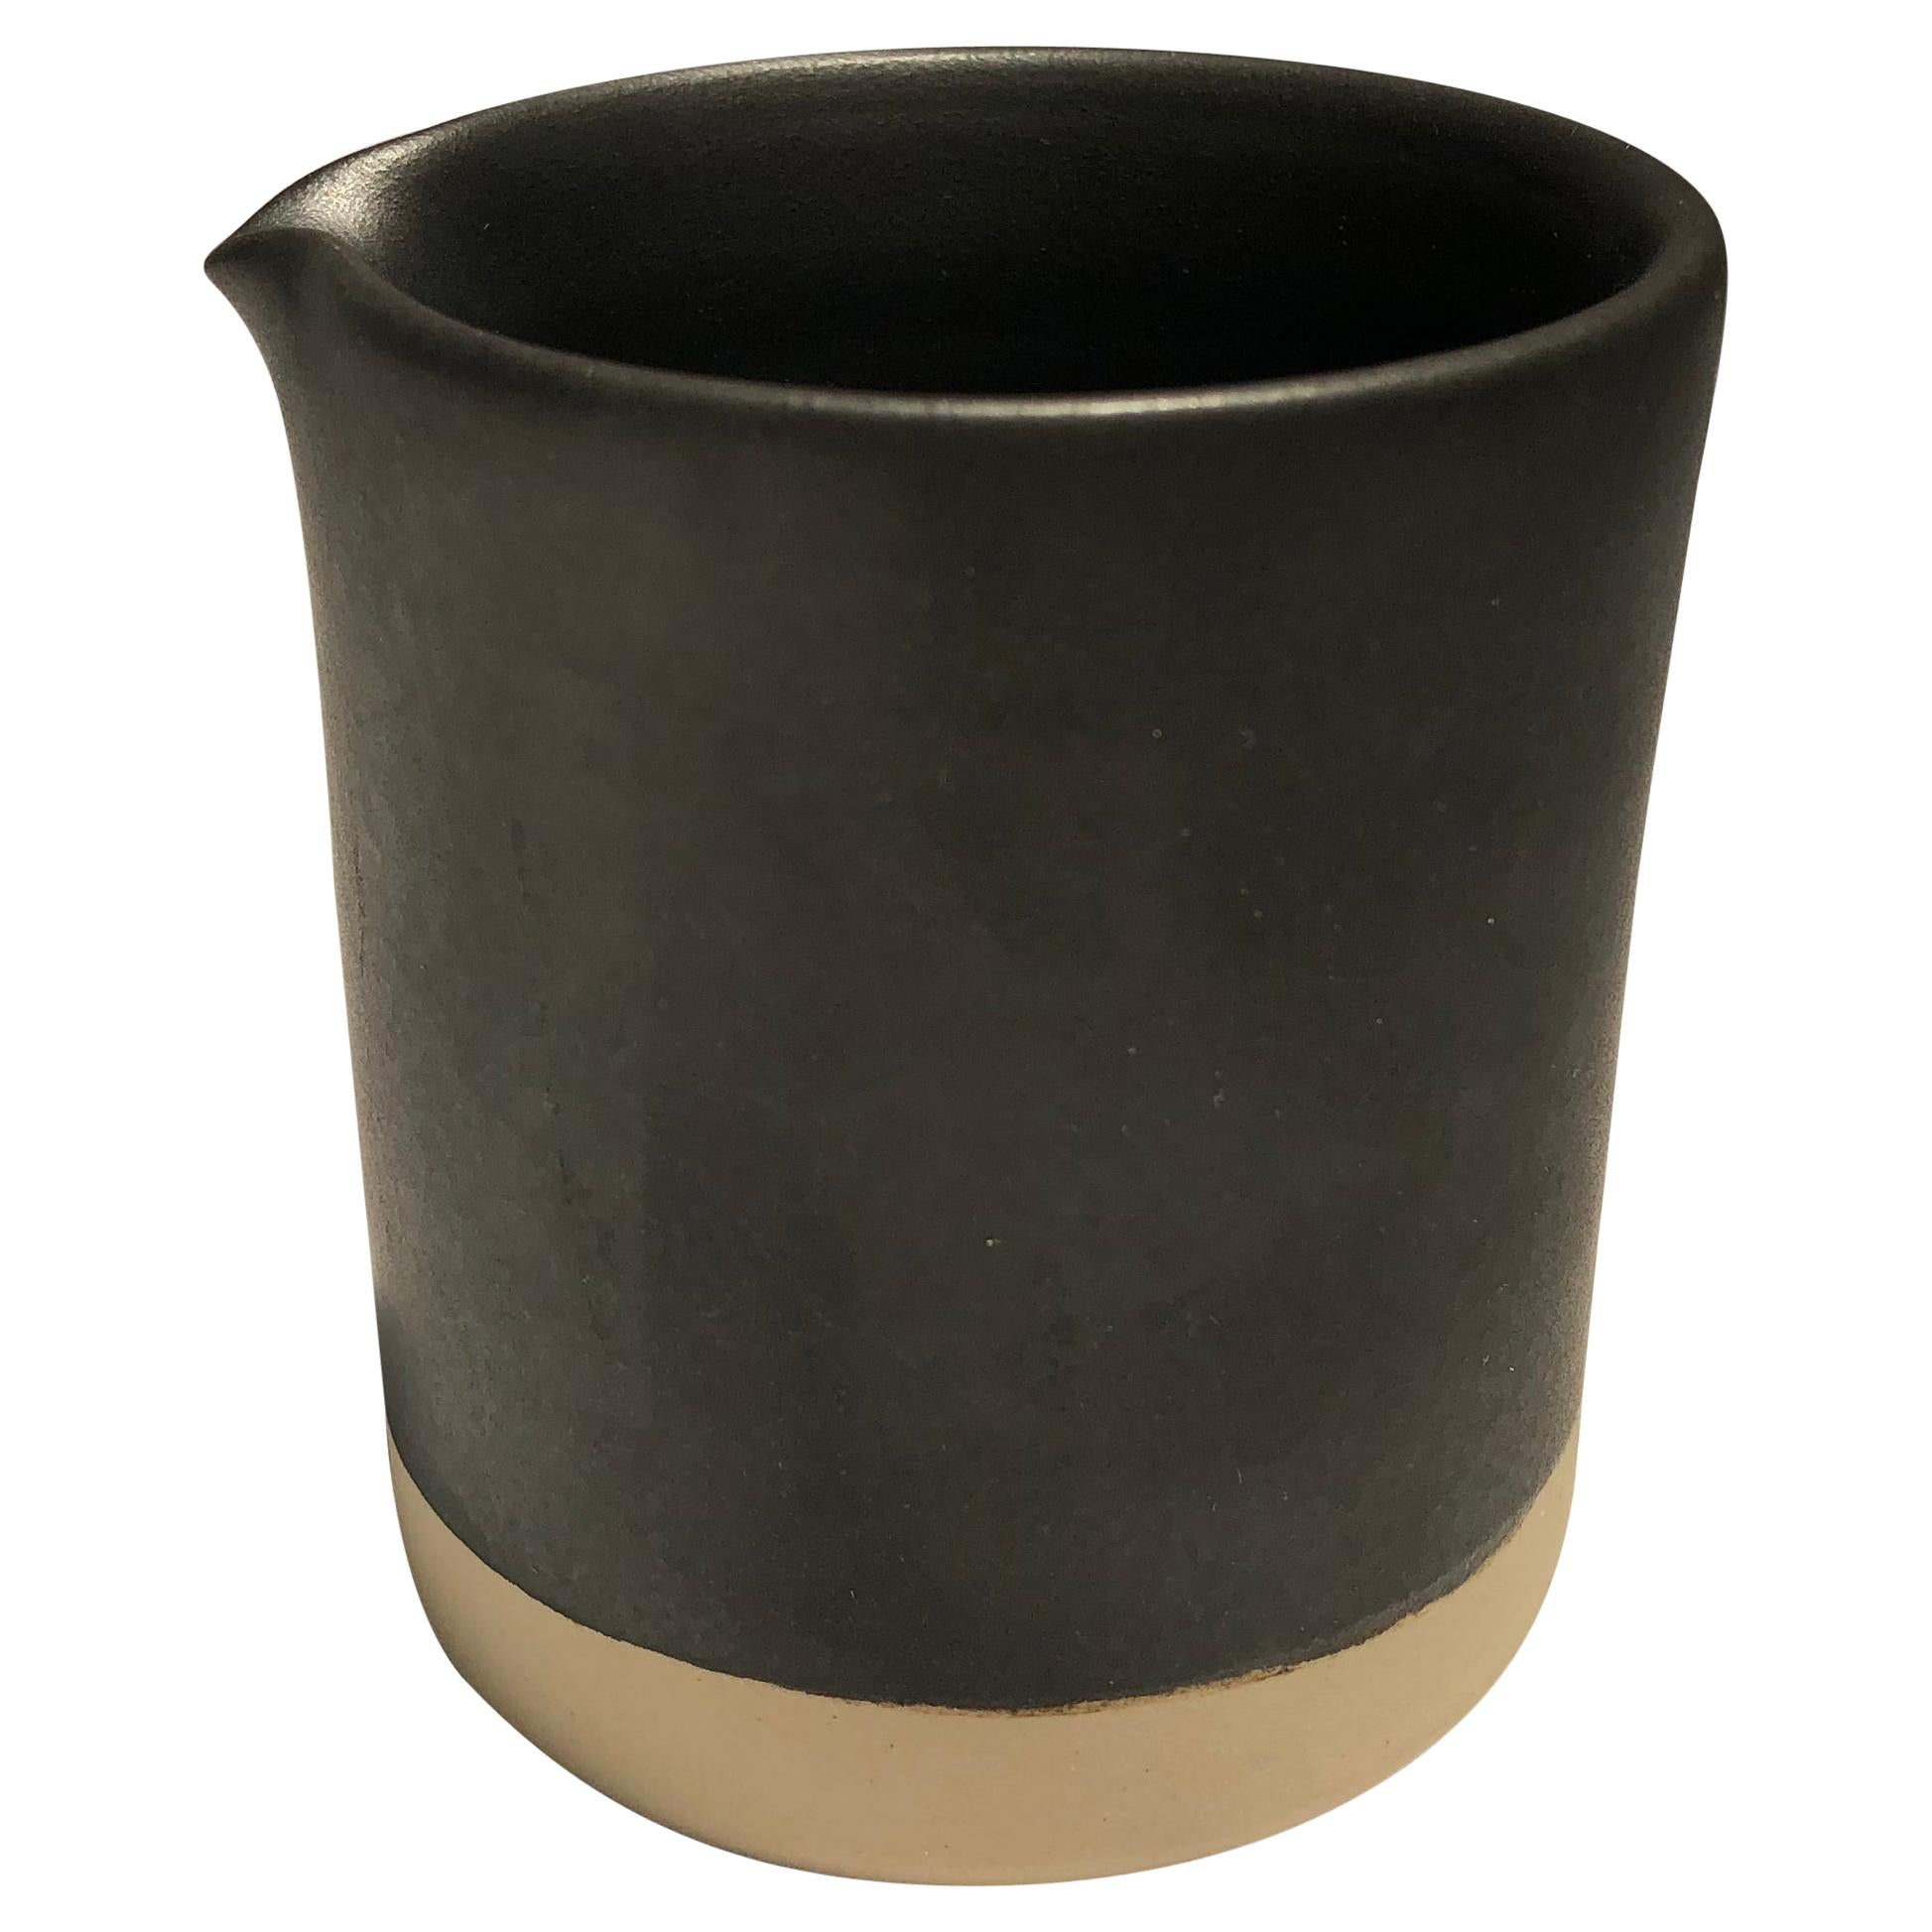 Handmade Ceramic Matte Creamer in Black, in Stock